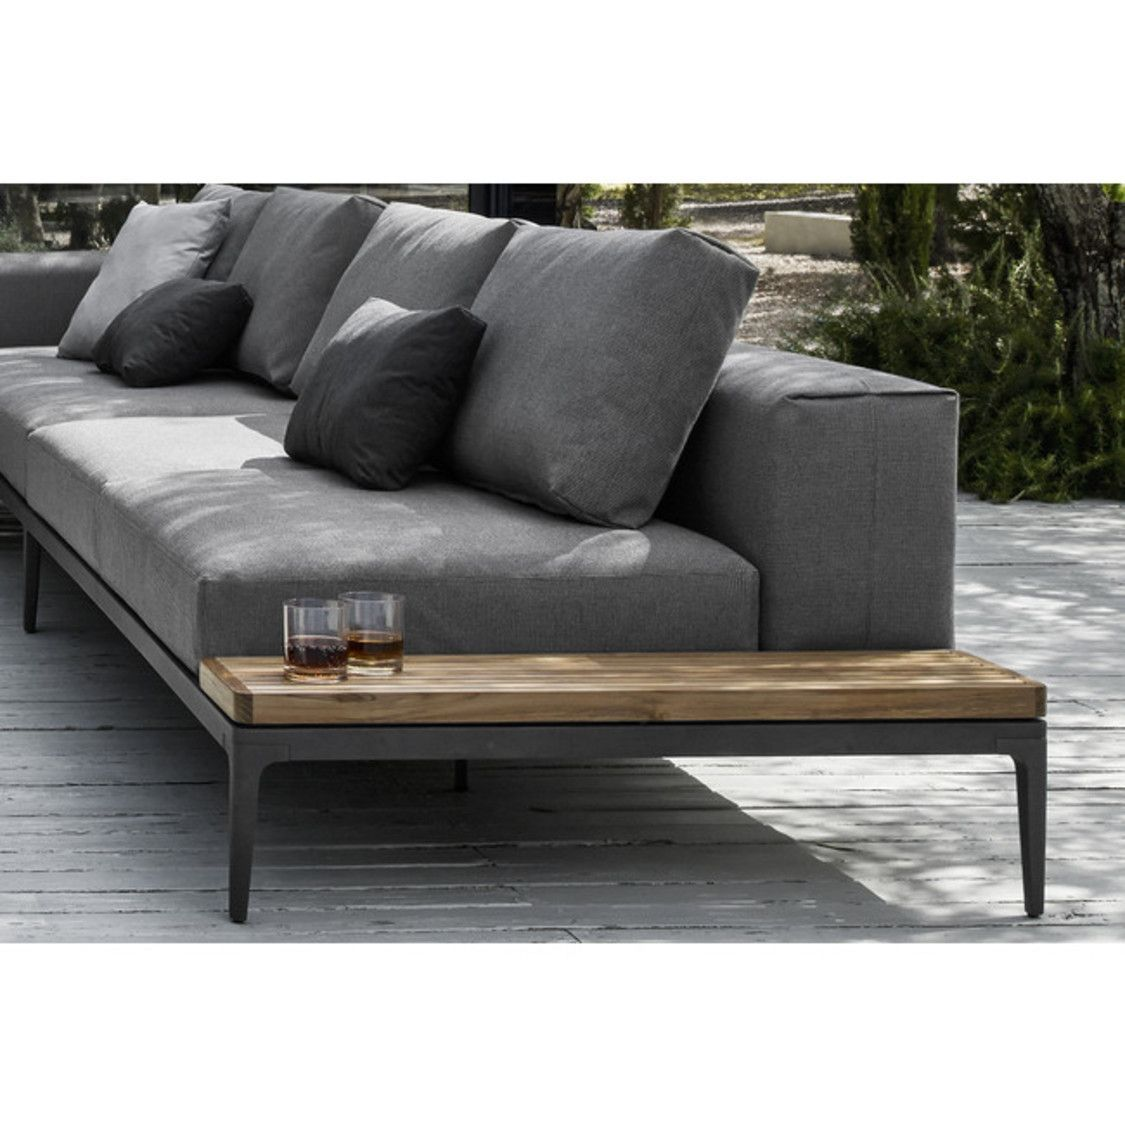 Garten Lounge Gloster Grid End Table Unit Gloster Garten Gloster Grid Lounge Table In 2020 Gloster Outdoor Furniture Outdoor Sofa Lounge